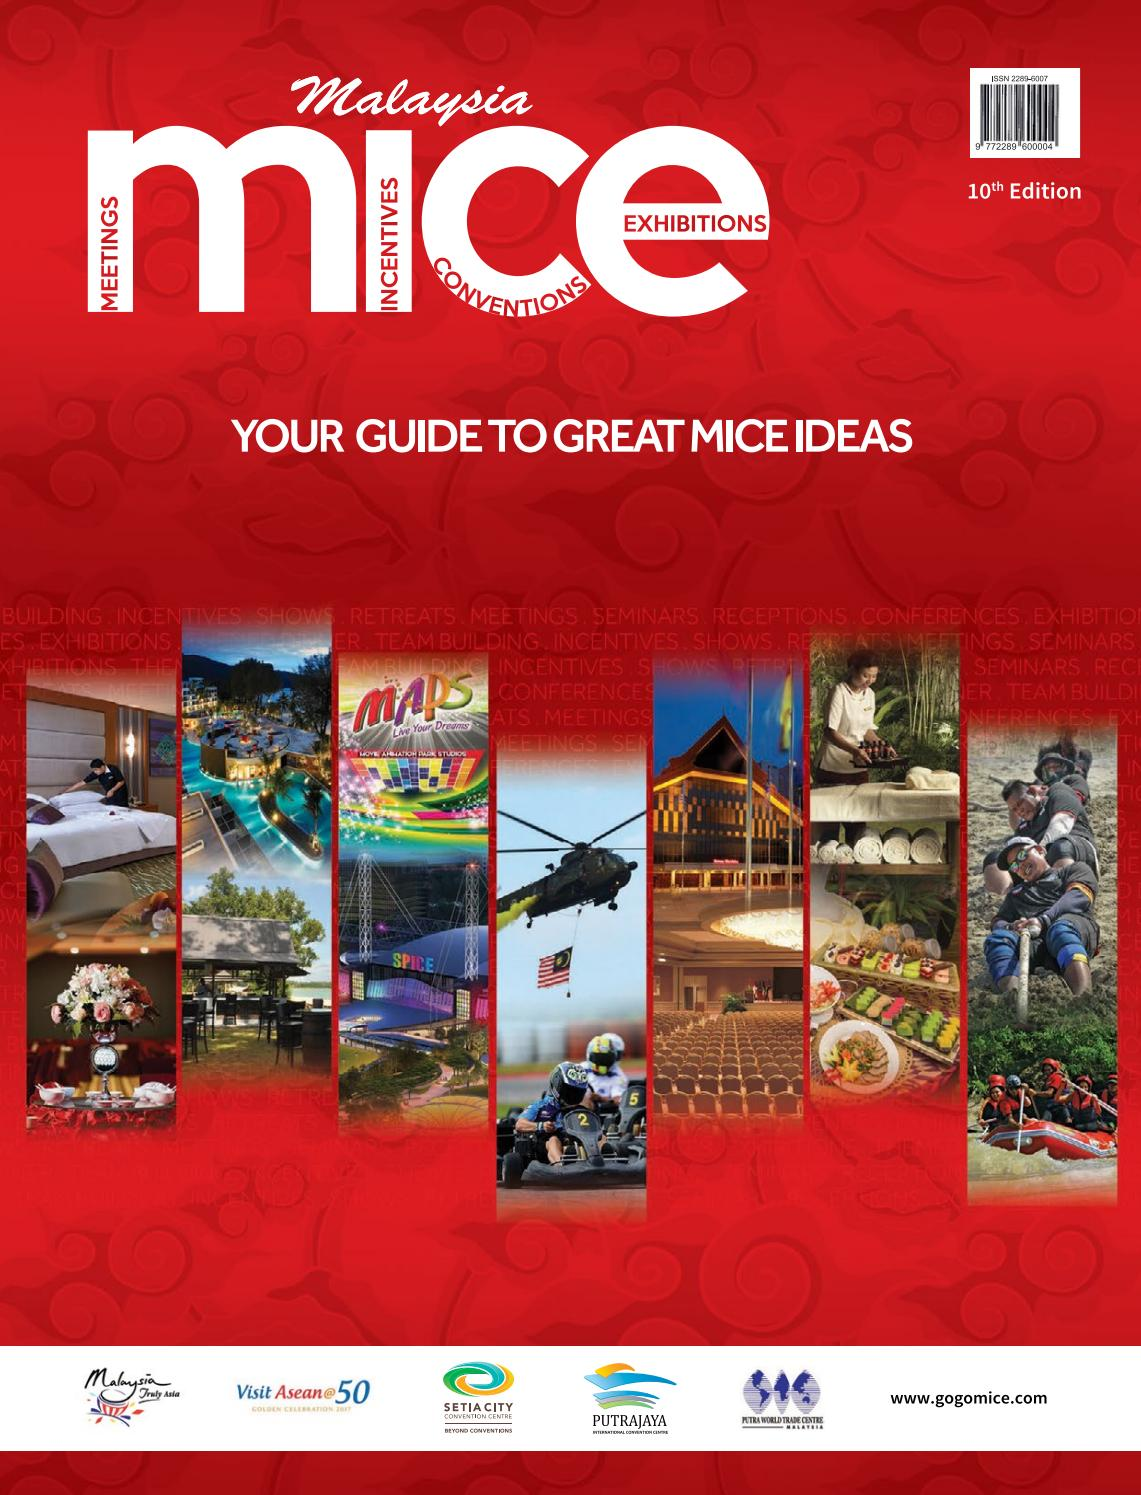 Malaysia Mice 2017 2018 10th Edition By Tourism Publications Vocer Belanja Di Garuda Golf Center Rp 4750000 Corporation Sdn Bhd Issuu